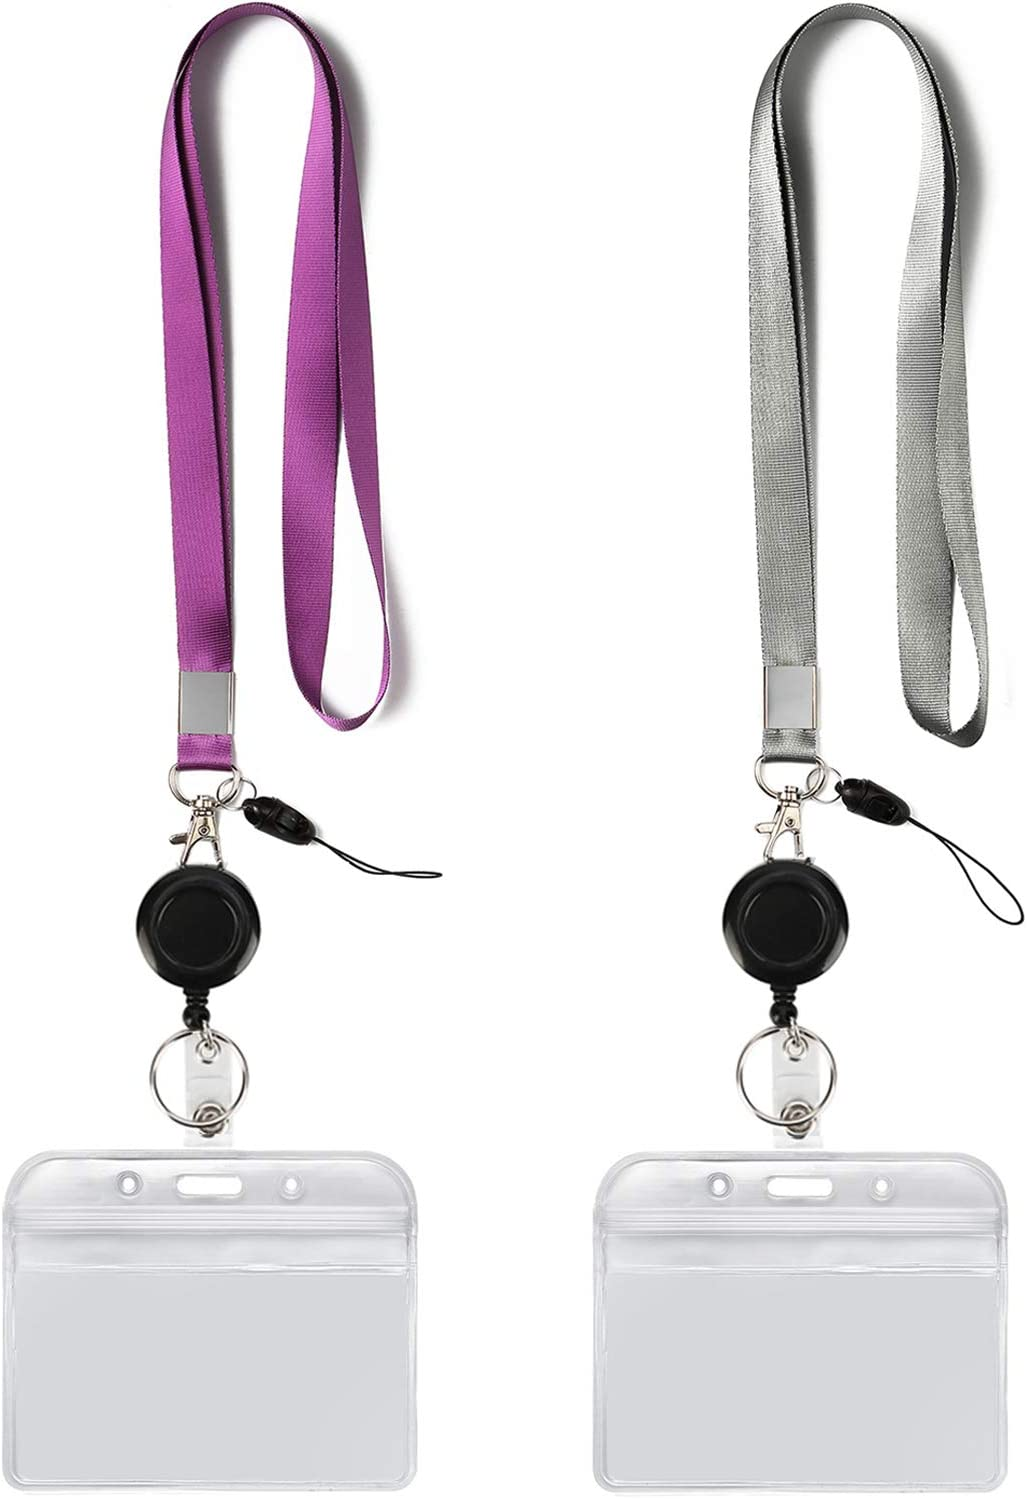 Black Hopeful Id Card Holders and Name Badges with Lanyard Neck Strap,Waterproof,Horizontal Flip for School Student,Teacher,Office Company Employee,Doctor Black Plastic Badge Holders